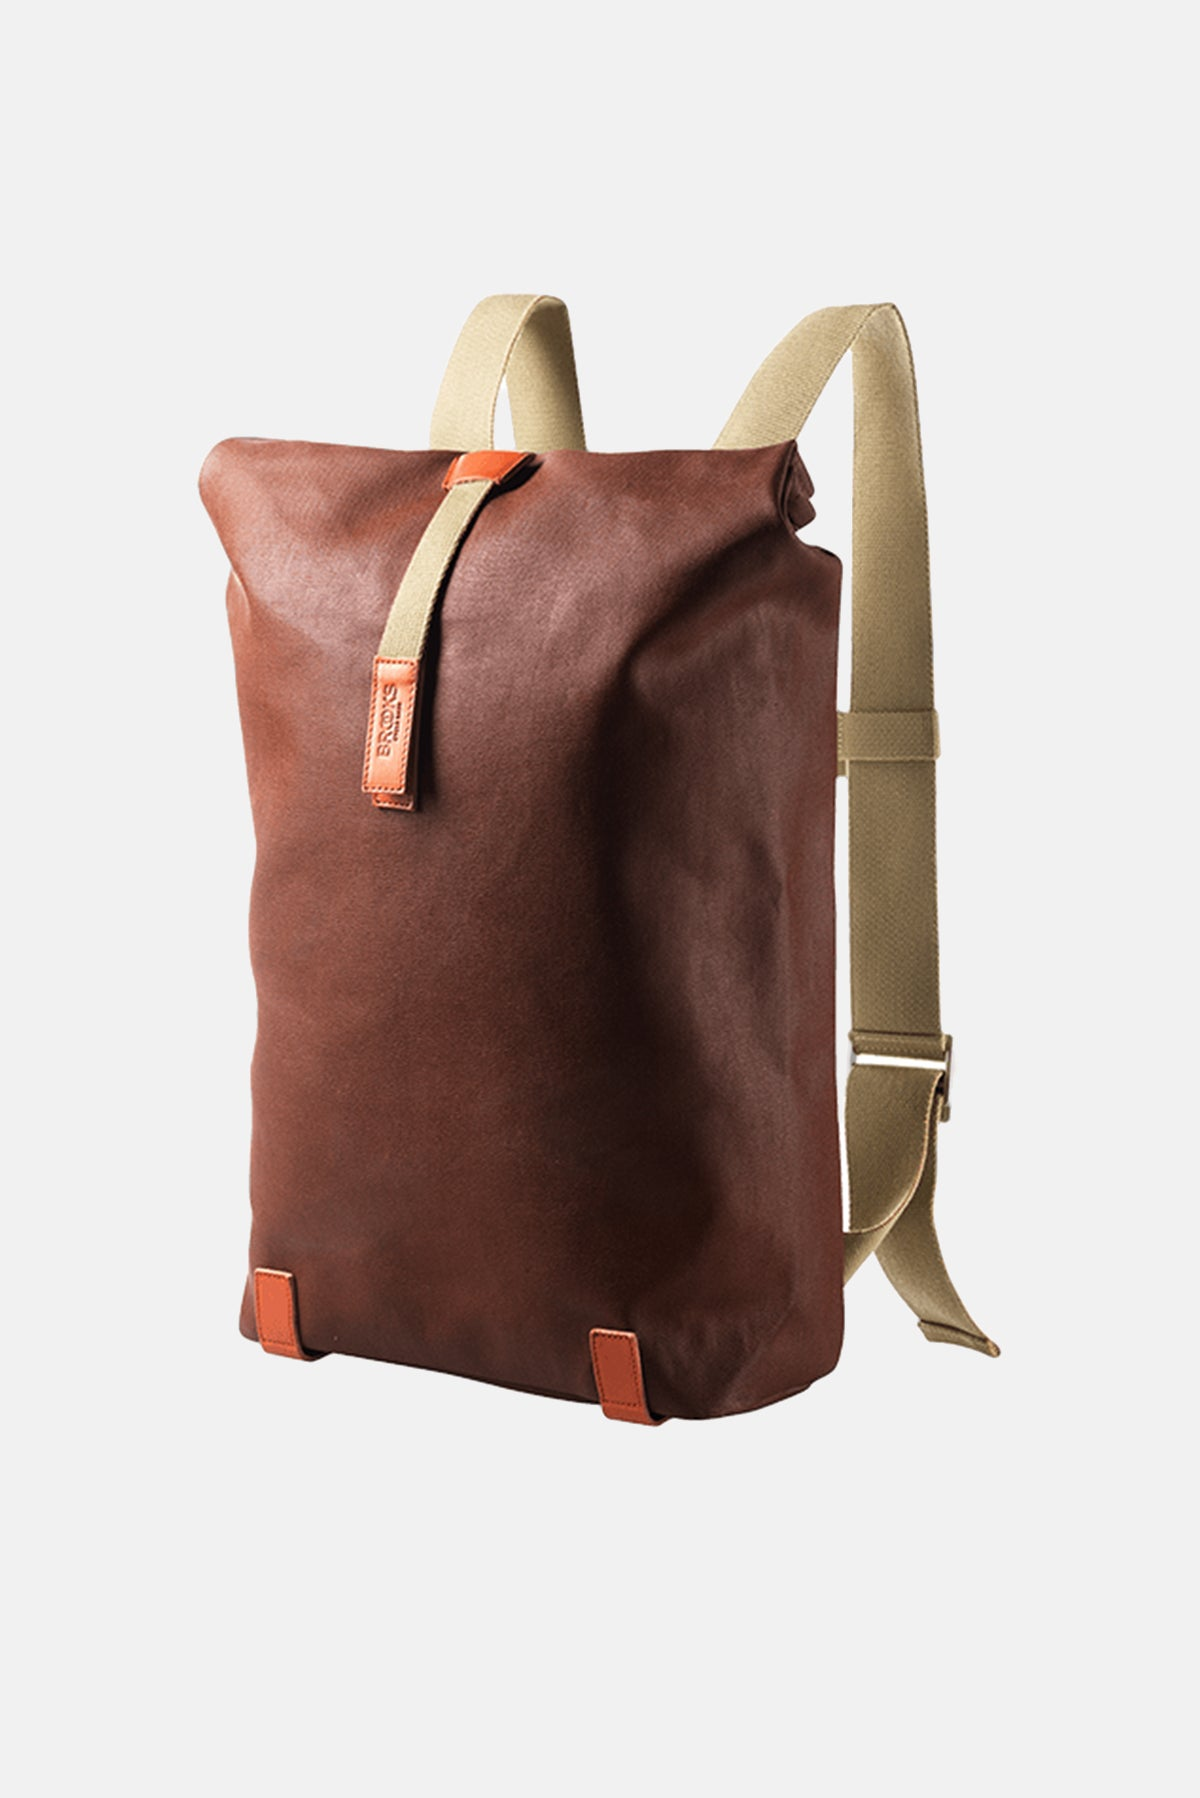 7f74e05e74 Brooks England Pickwick Canvas Leather Backpack available from Priory